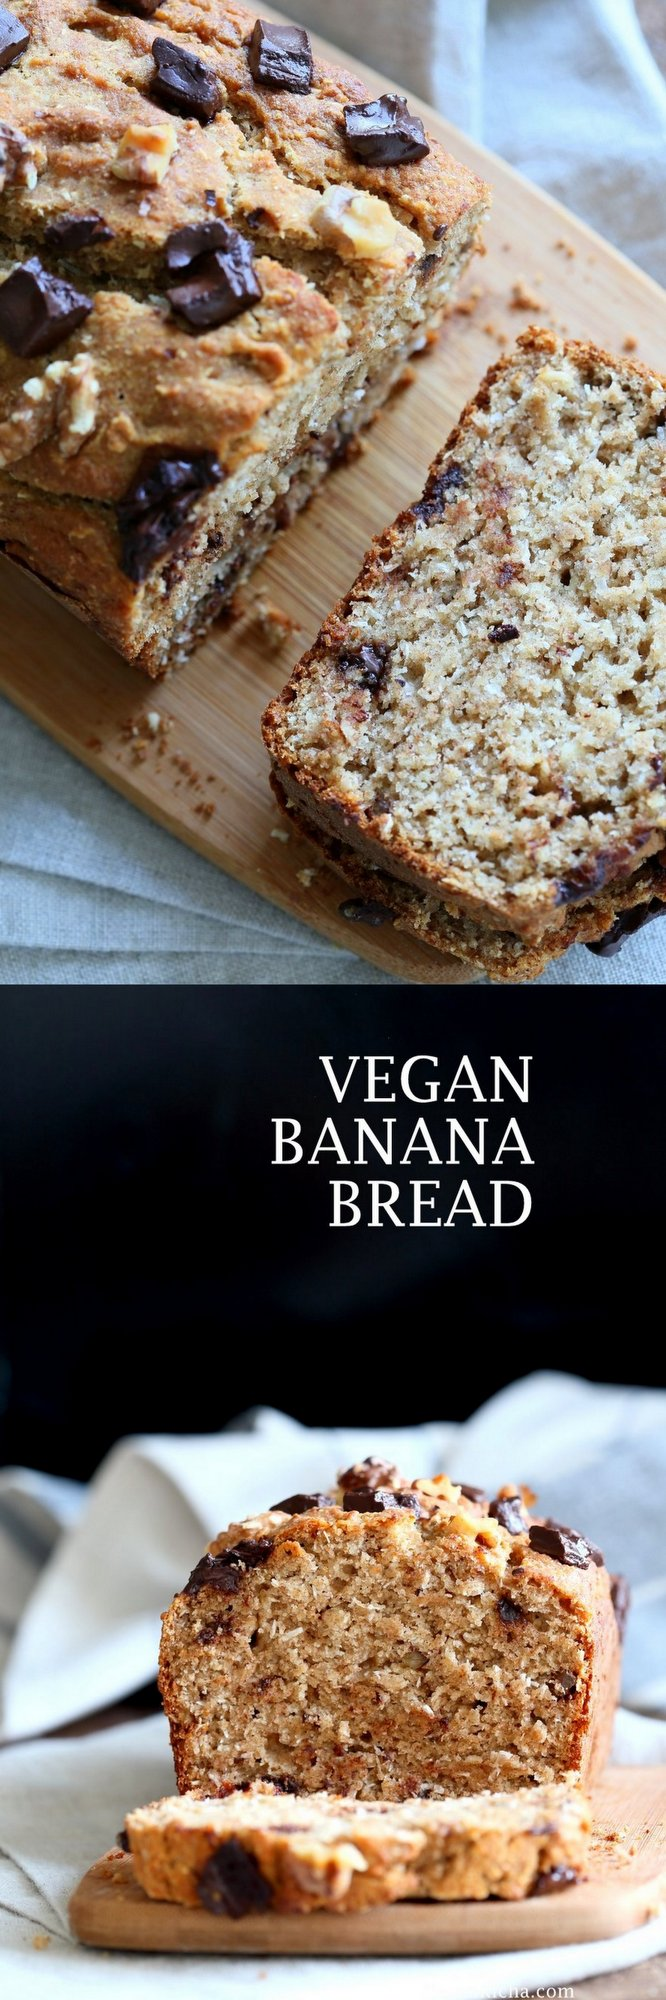 Vegan Banana Bread with Walnuts. Classic super moist Banana bread with toasted nuts and coconut. No Palm oil. #Vegan #Recipe #veganricha | VeganRicha.com.